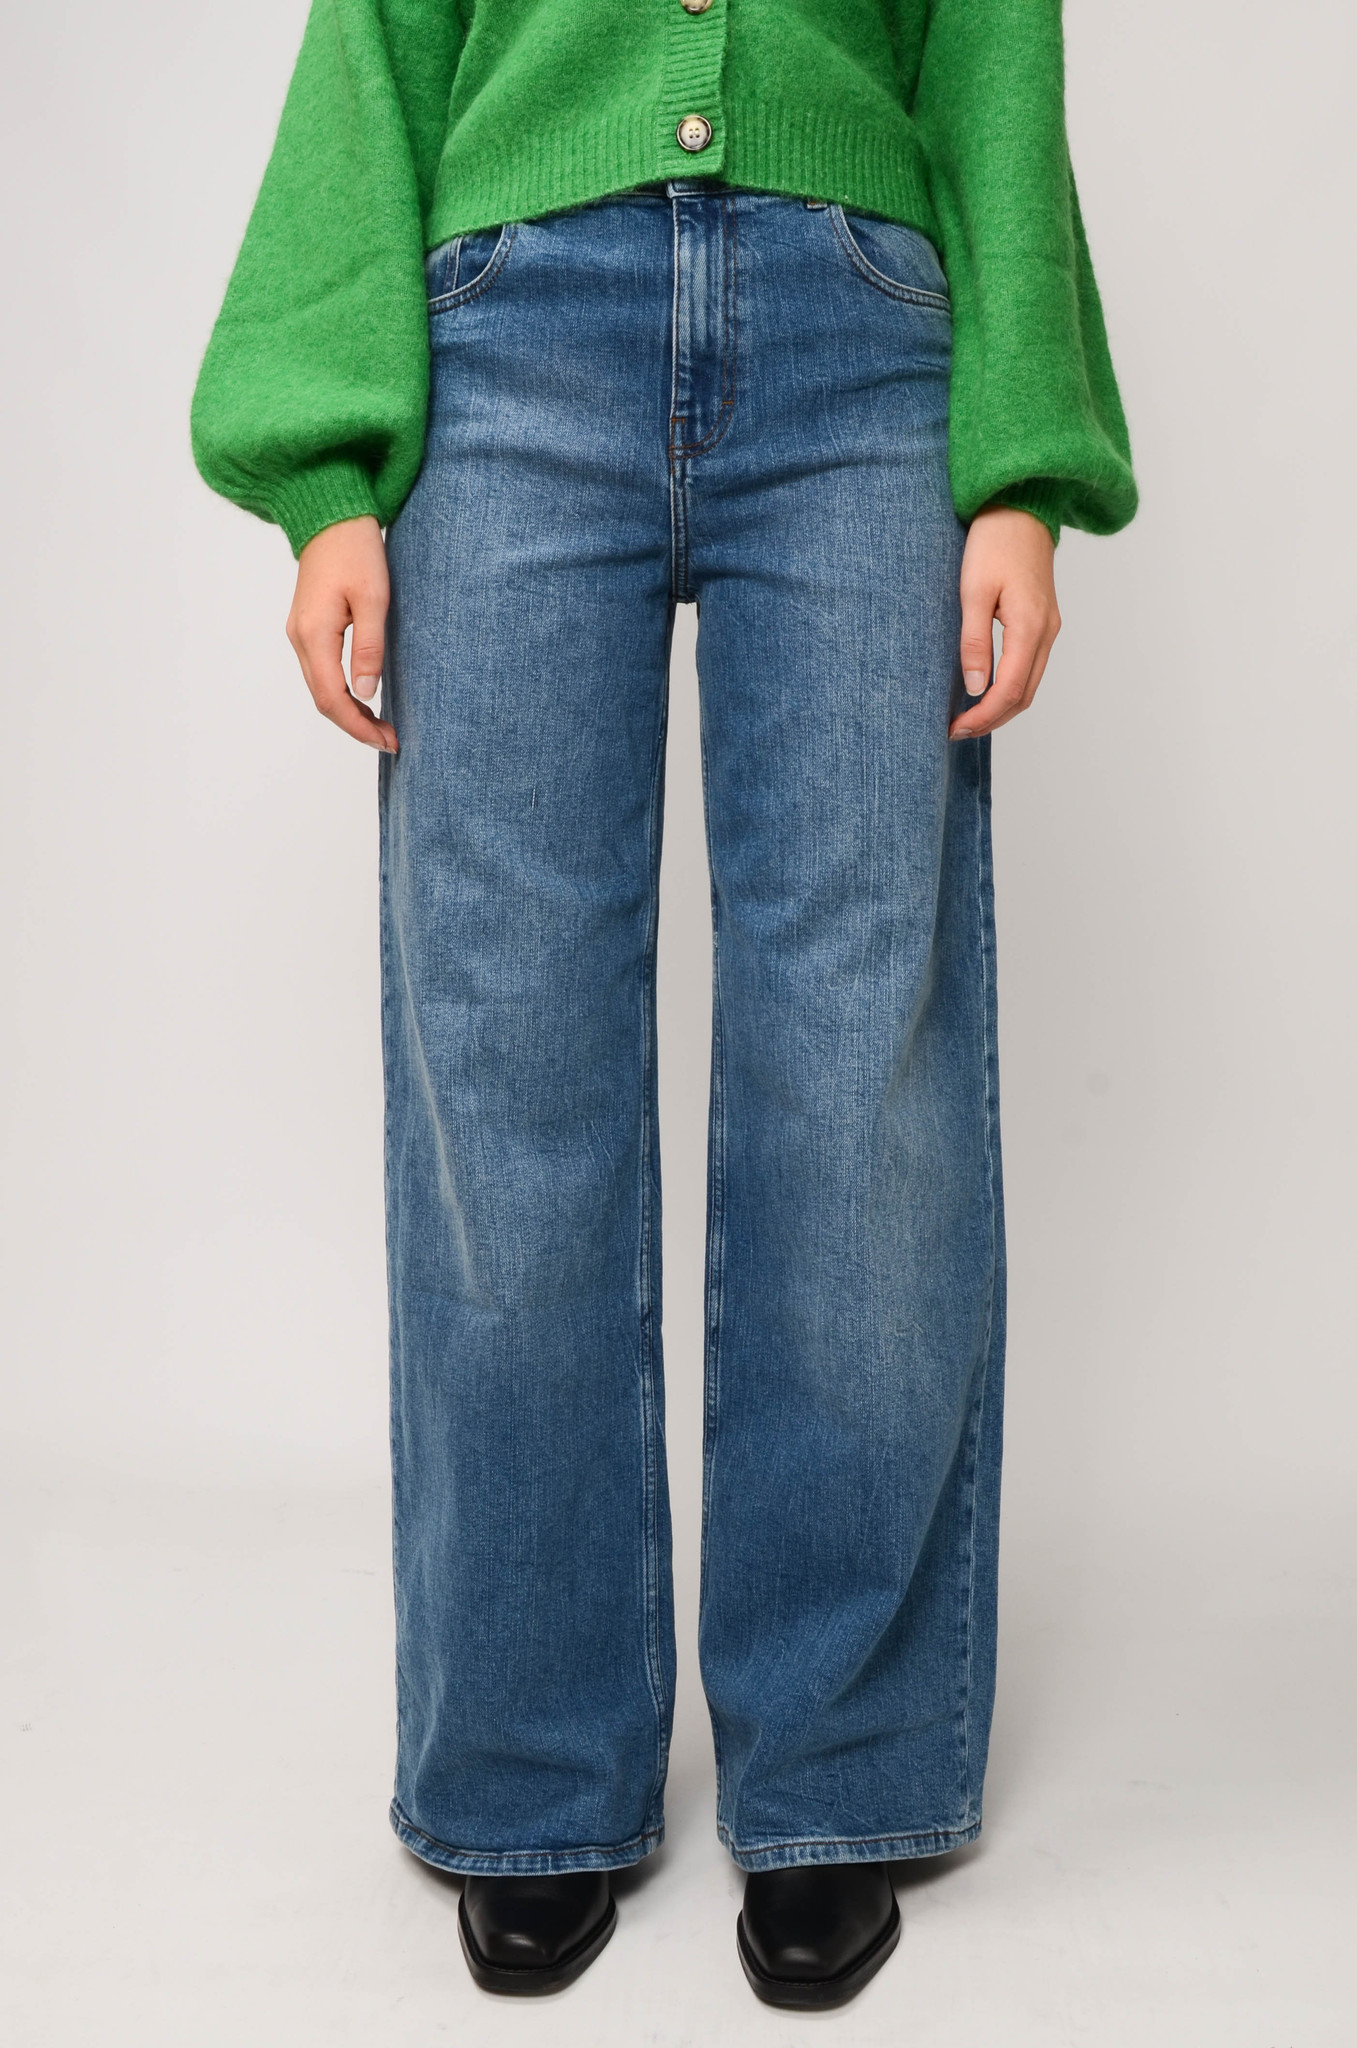 NINI JEANS IN WASHED DENIM-1